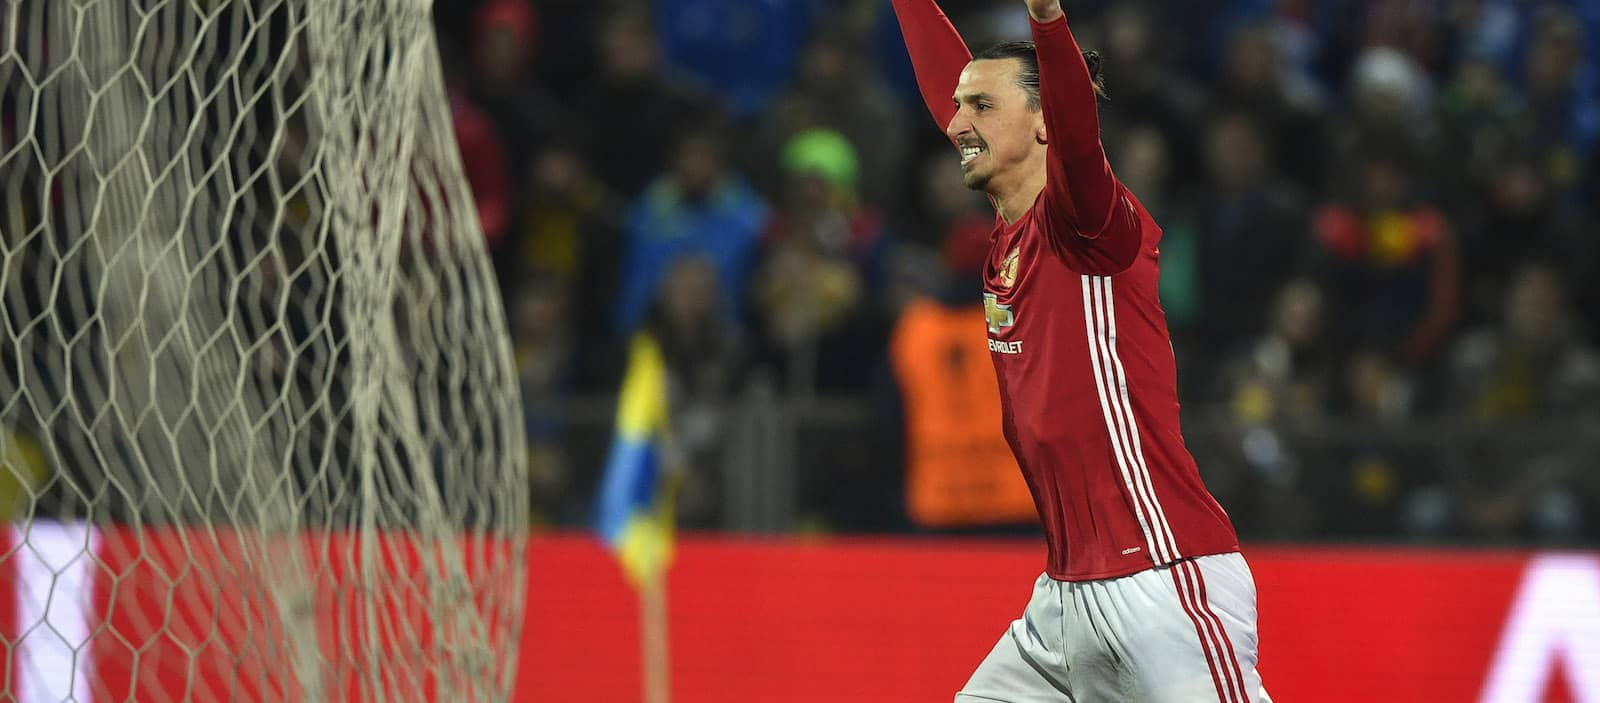 Zlatan Ibrahimovic rejects LA Galaxy offer as he wants Man United return